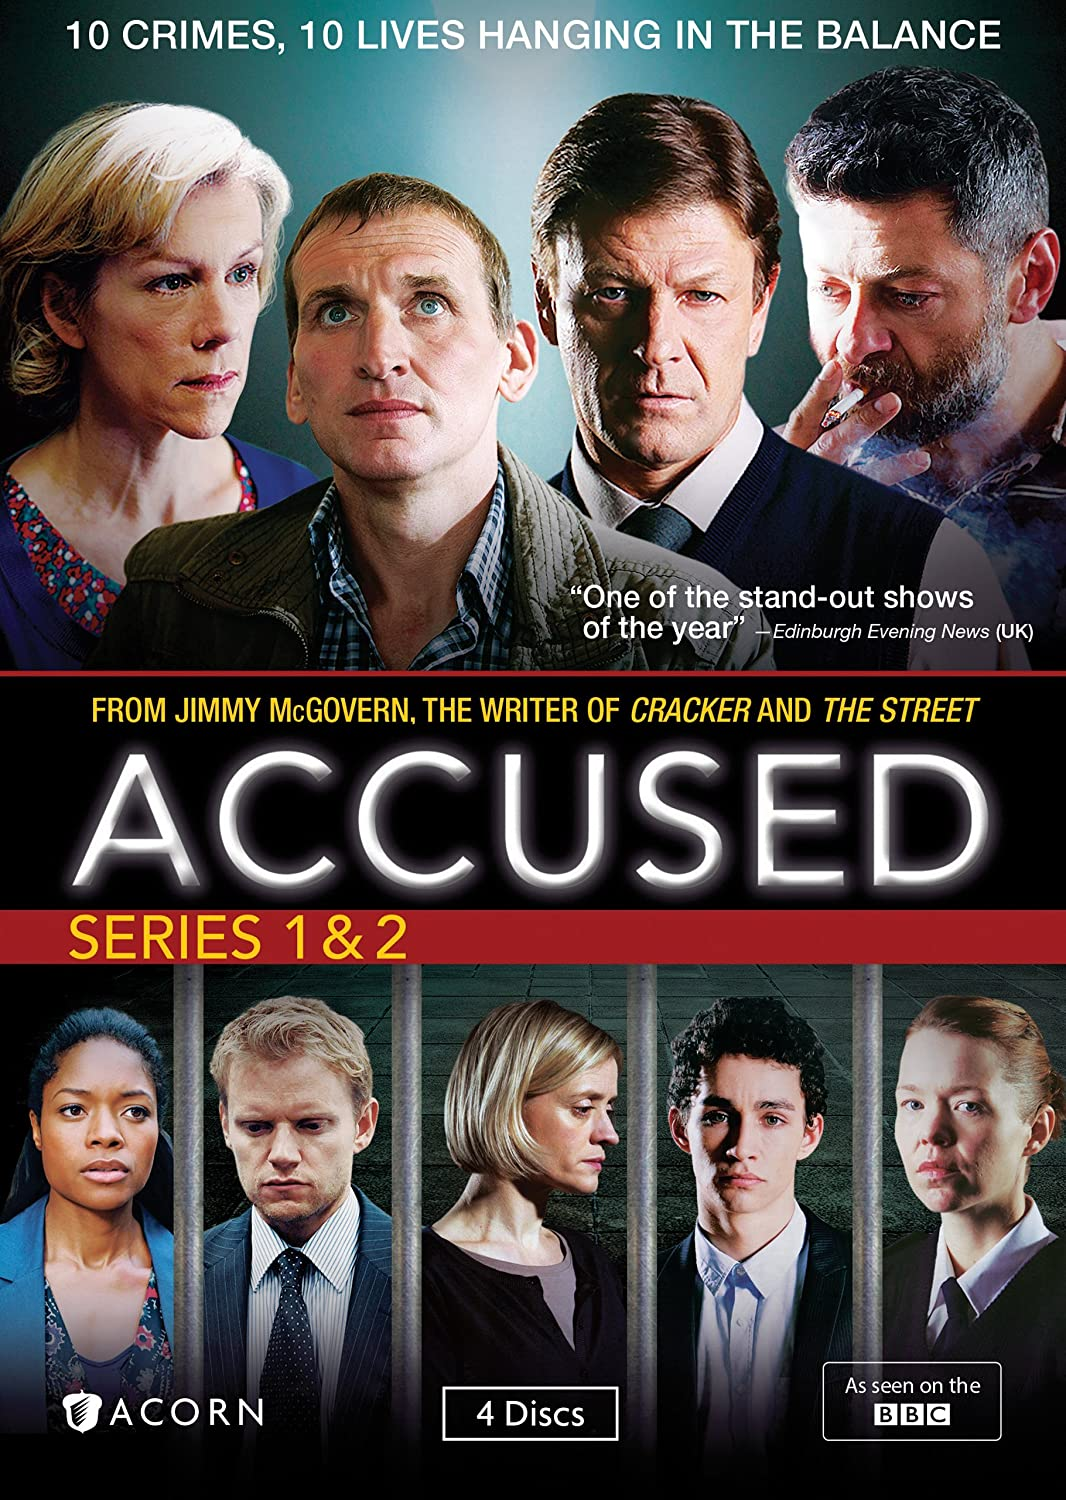 com accused series sean bean anna maxwell martin com accused series 1 2 sean bean anna maxwell martin andy serkis peter capaldi juliet stevenson david blair richard laxton ashley pearce